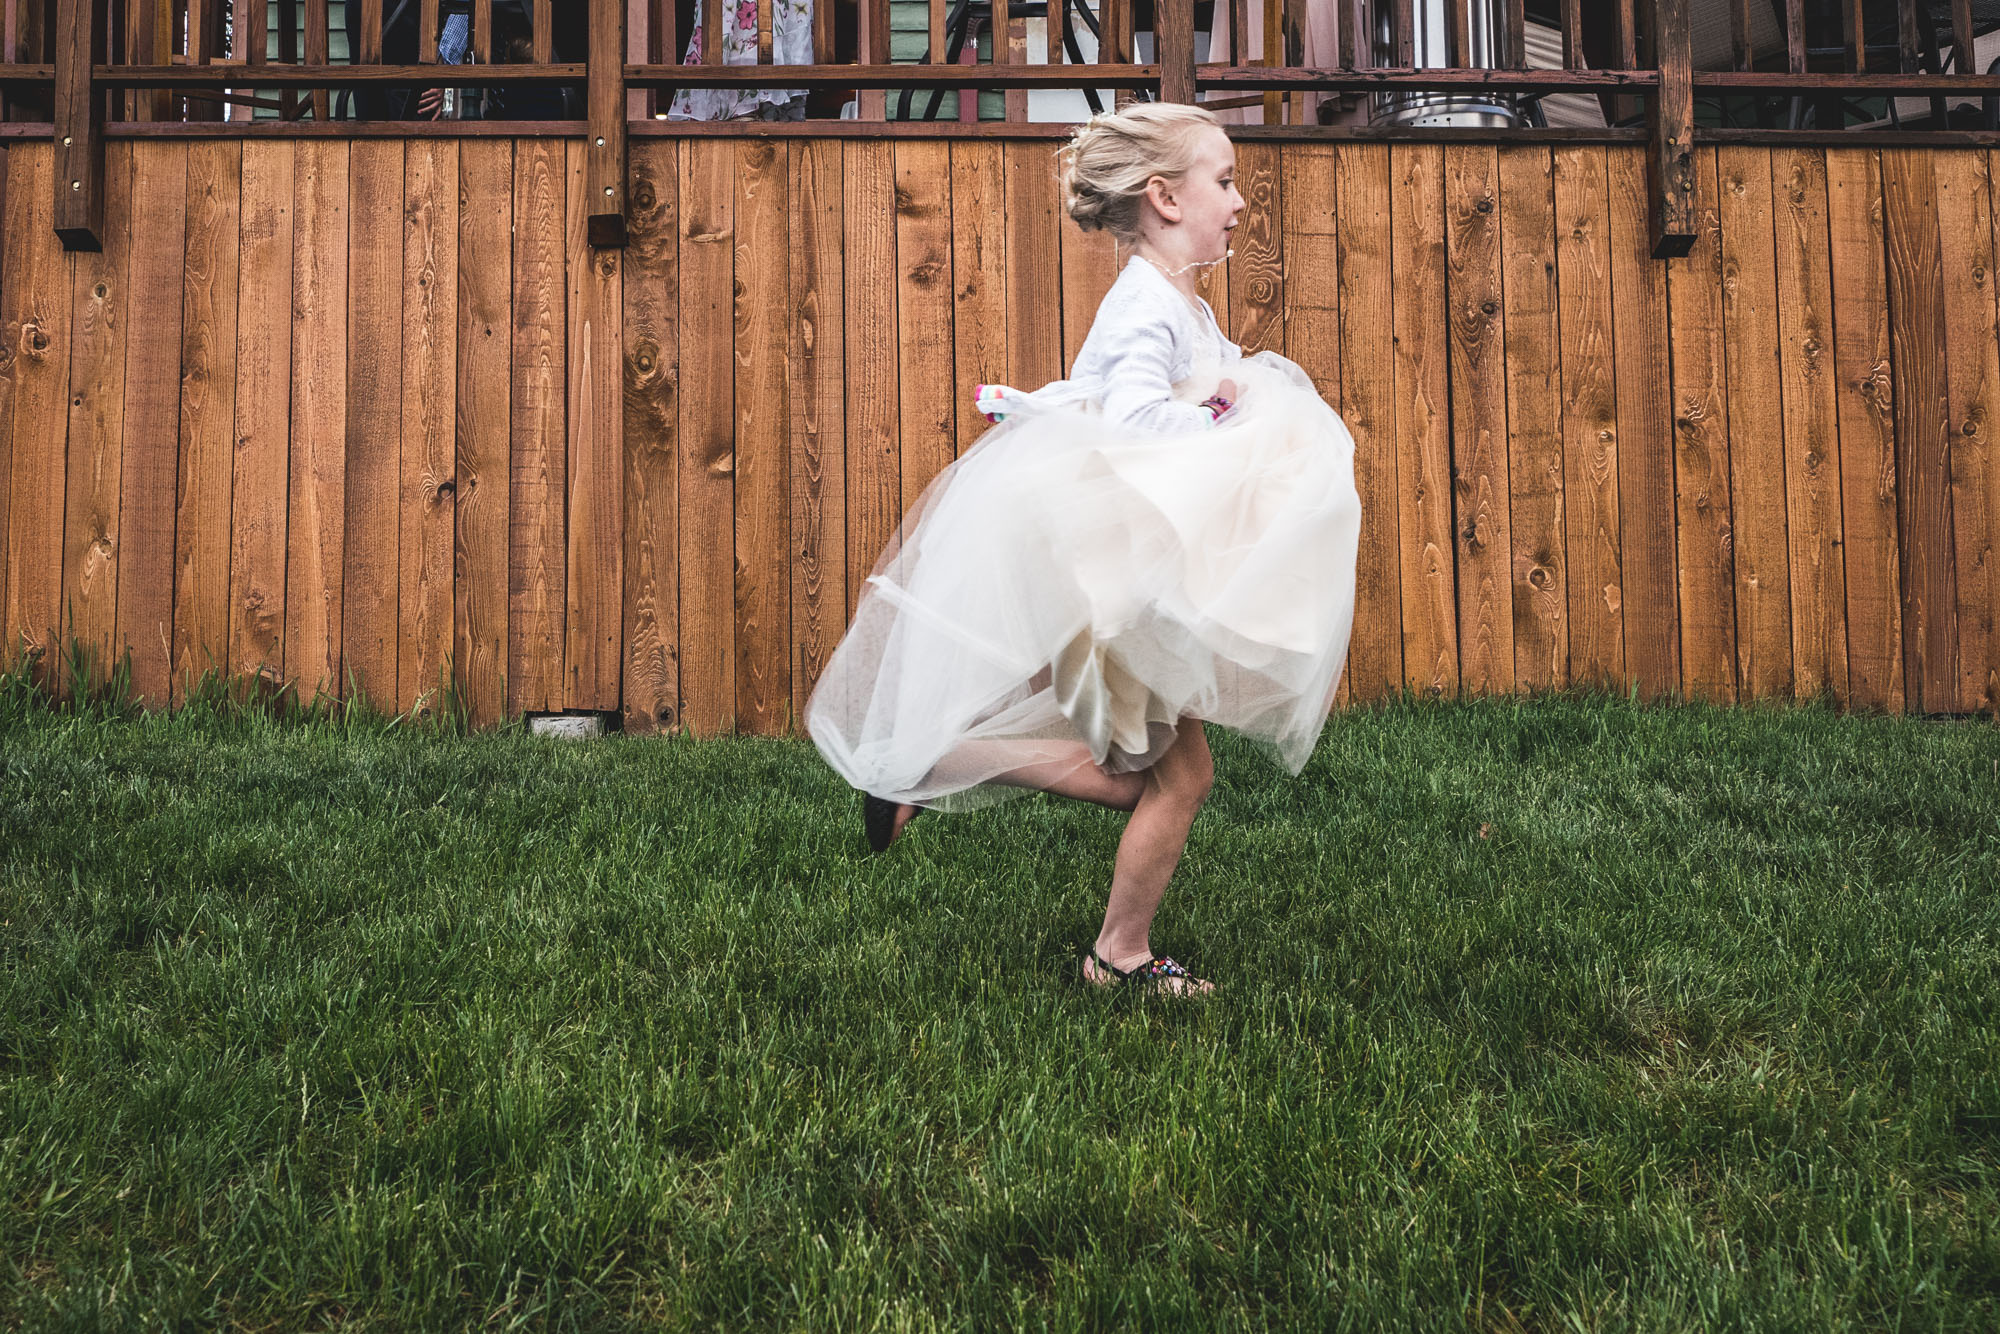 Color photo of a little girl in a white puffy dress running through the dark green grass with a wood deck as her backdrop